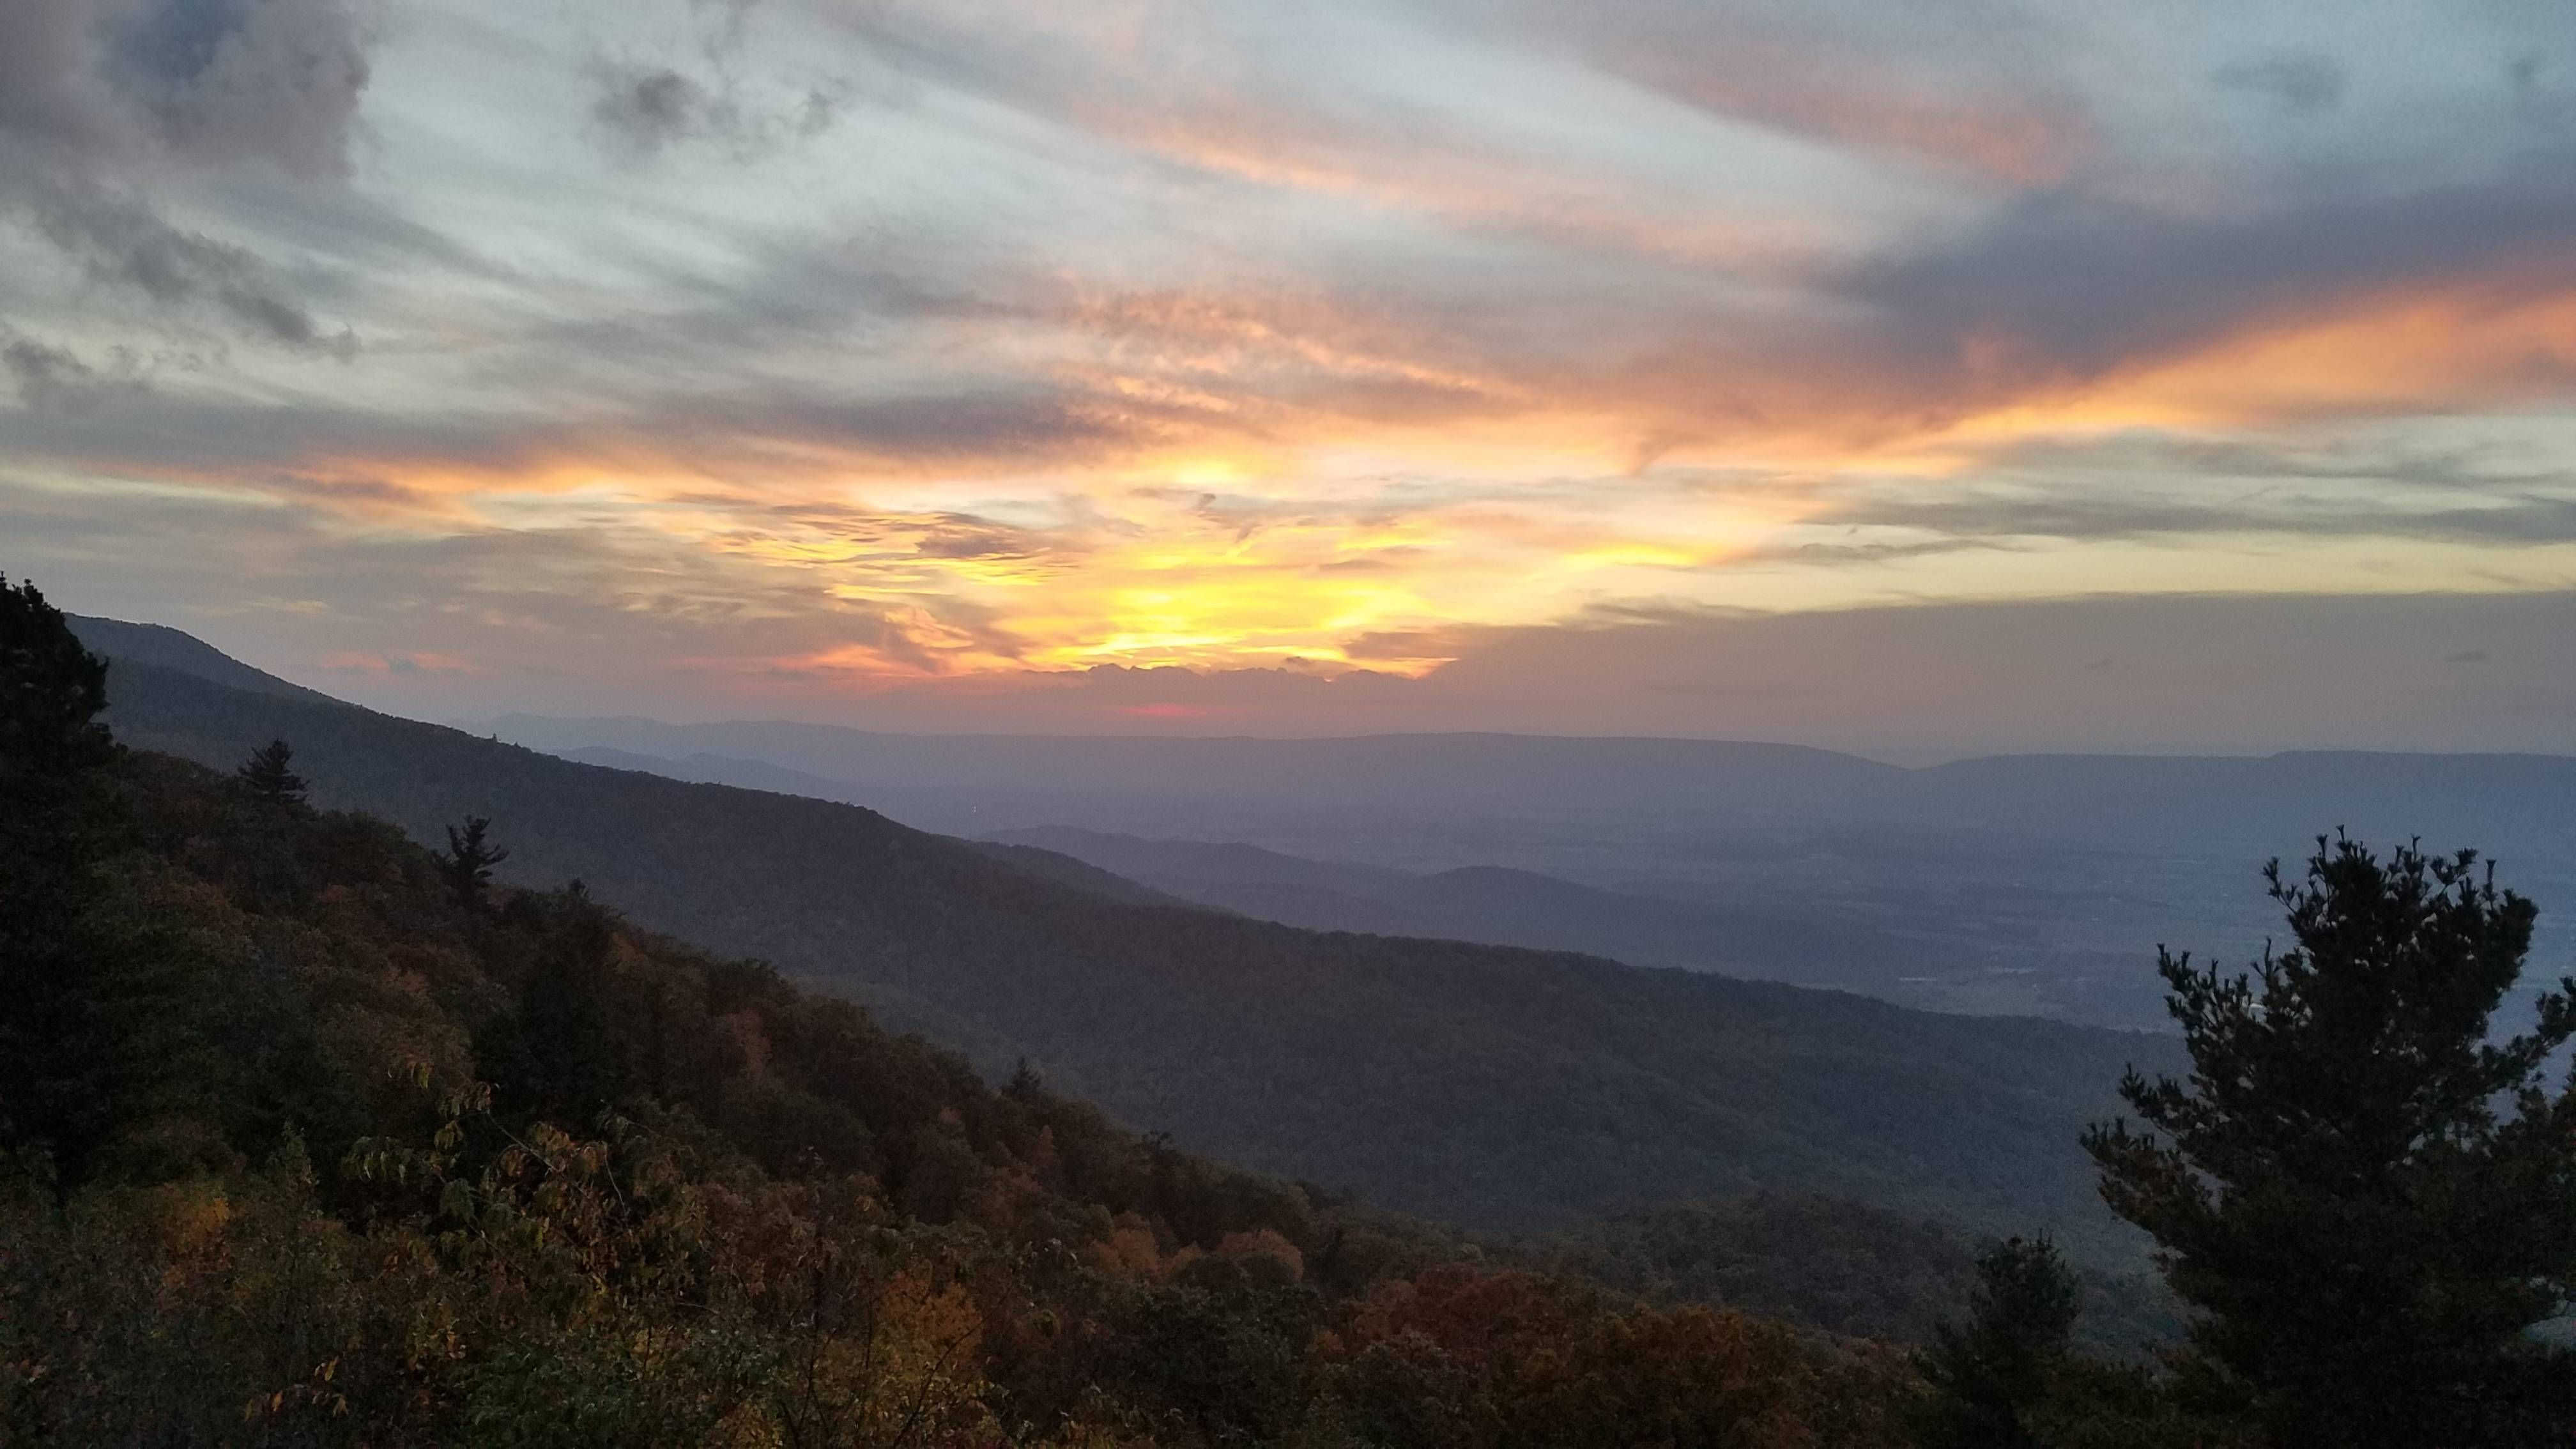 Fall sunset over the Shenandoah Valley; Virginia USA [OC] (4032x2268)